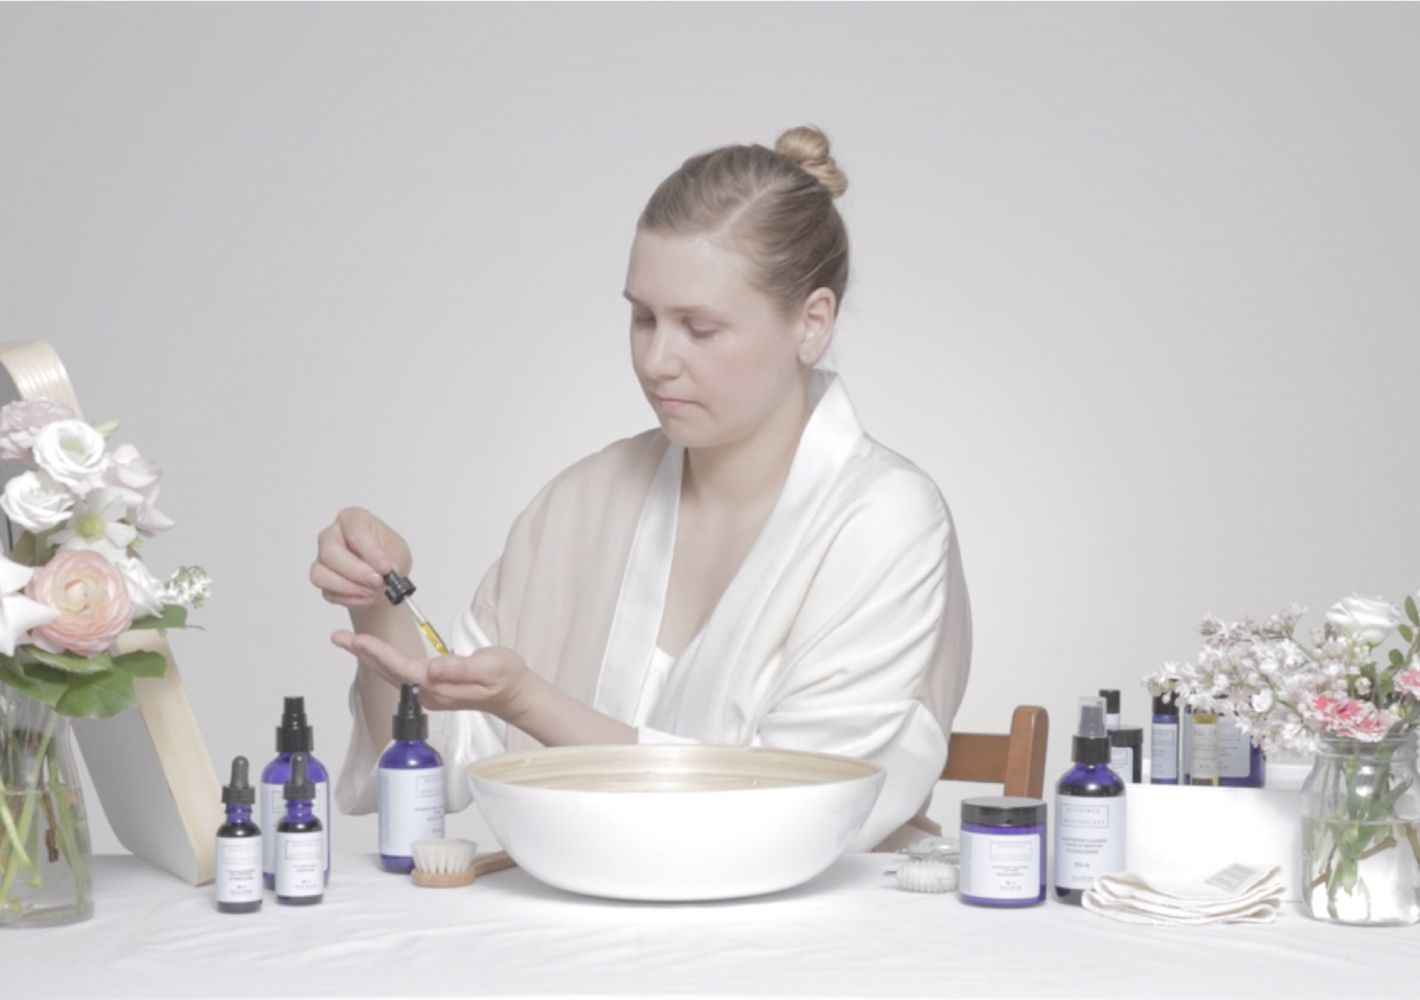 Julie Clarke the founder of Province Apothecary using some of her products to showcase her daily skincare routine.